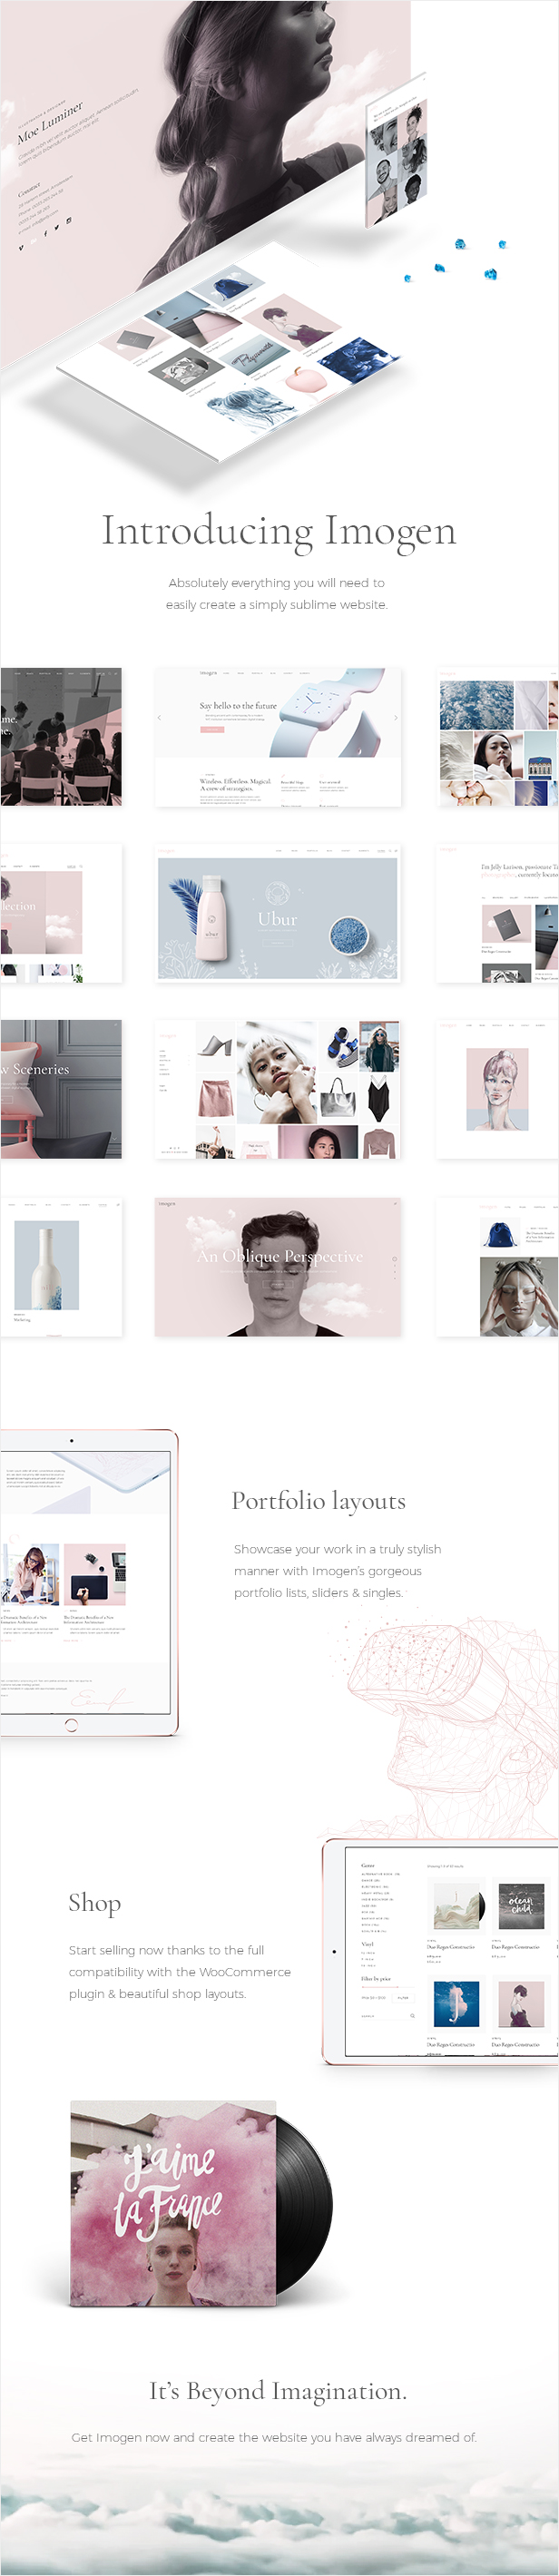 WordPress theme Imogen - An Elegant Theme for Designers and Creative Businesses (Creative)